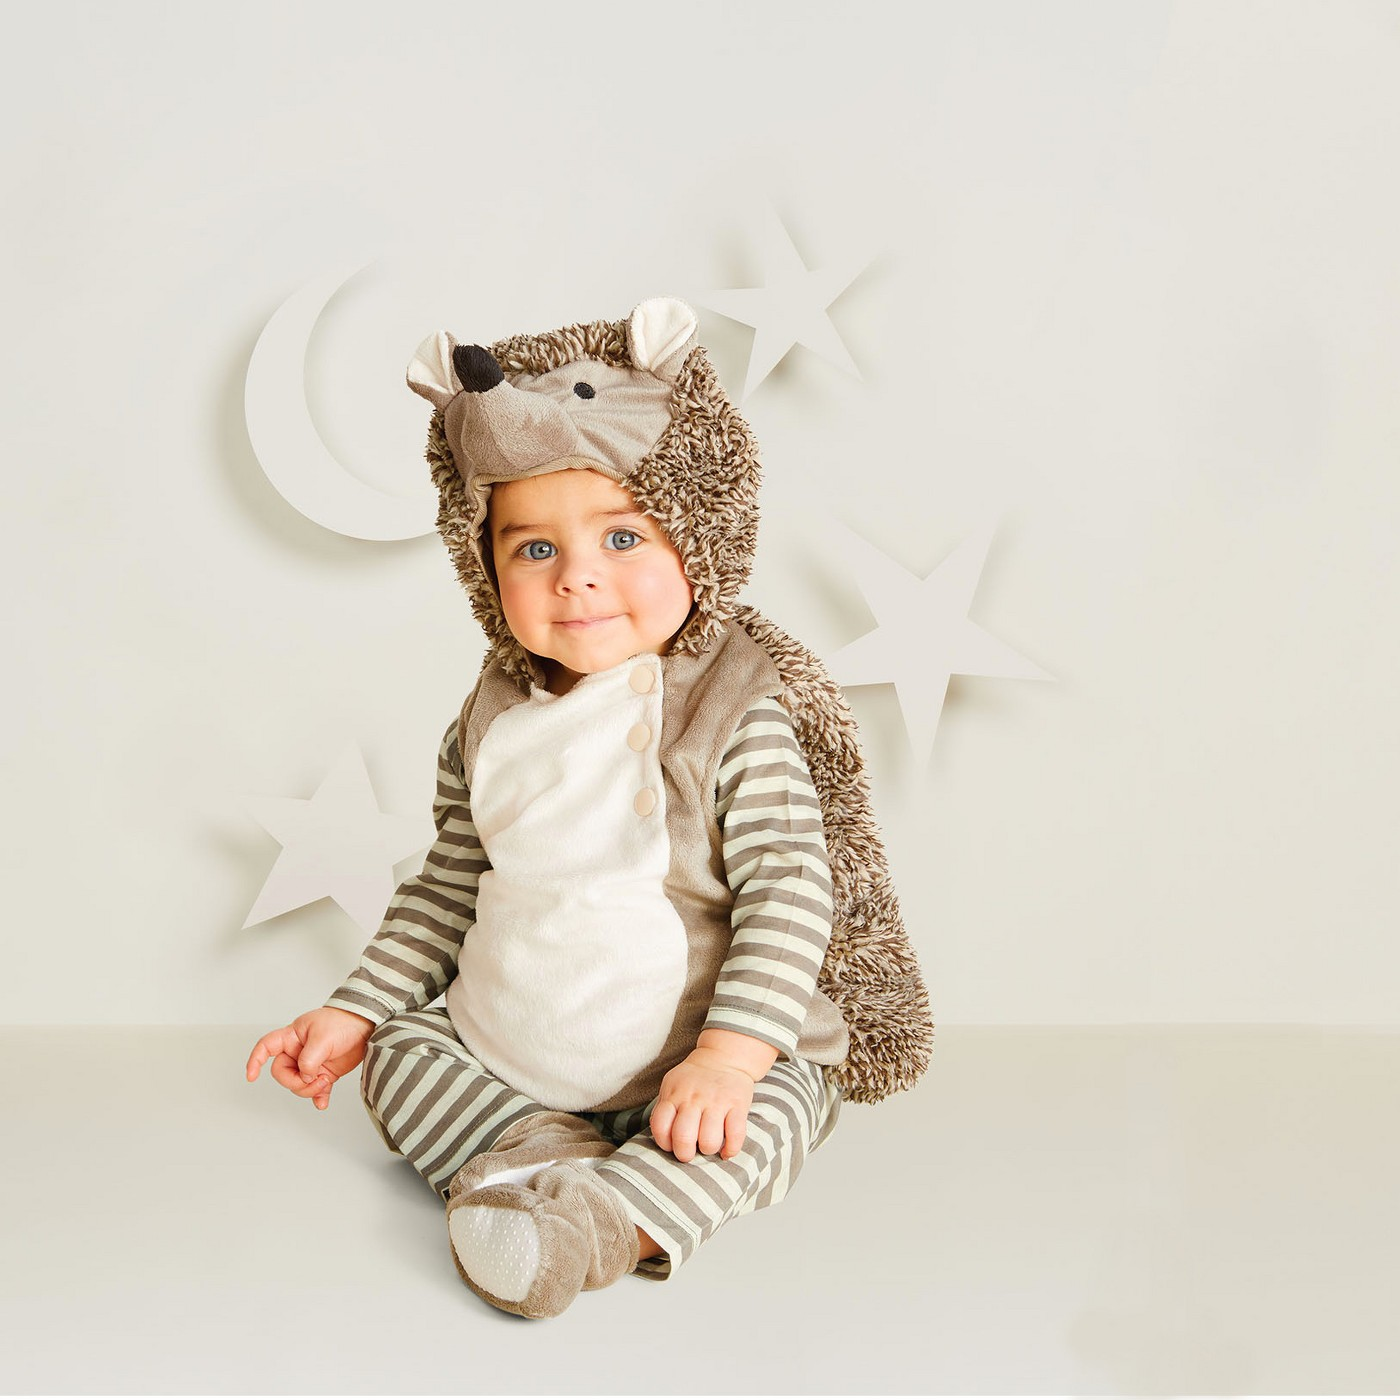 Baby Plush Hedgehog Vest Halloween Costume - Hyde and Eek! Boutique™ - image 1 of 1